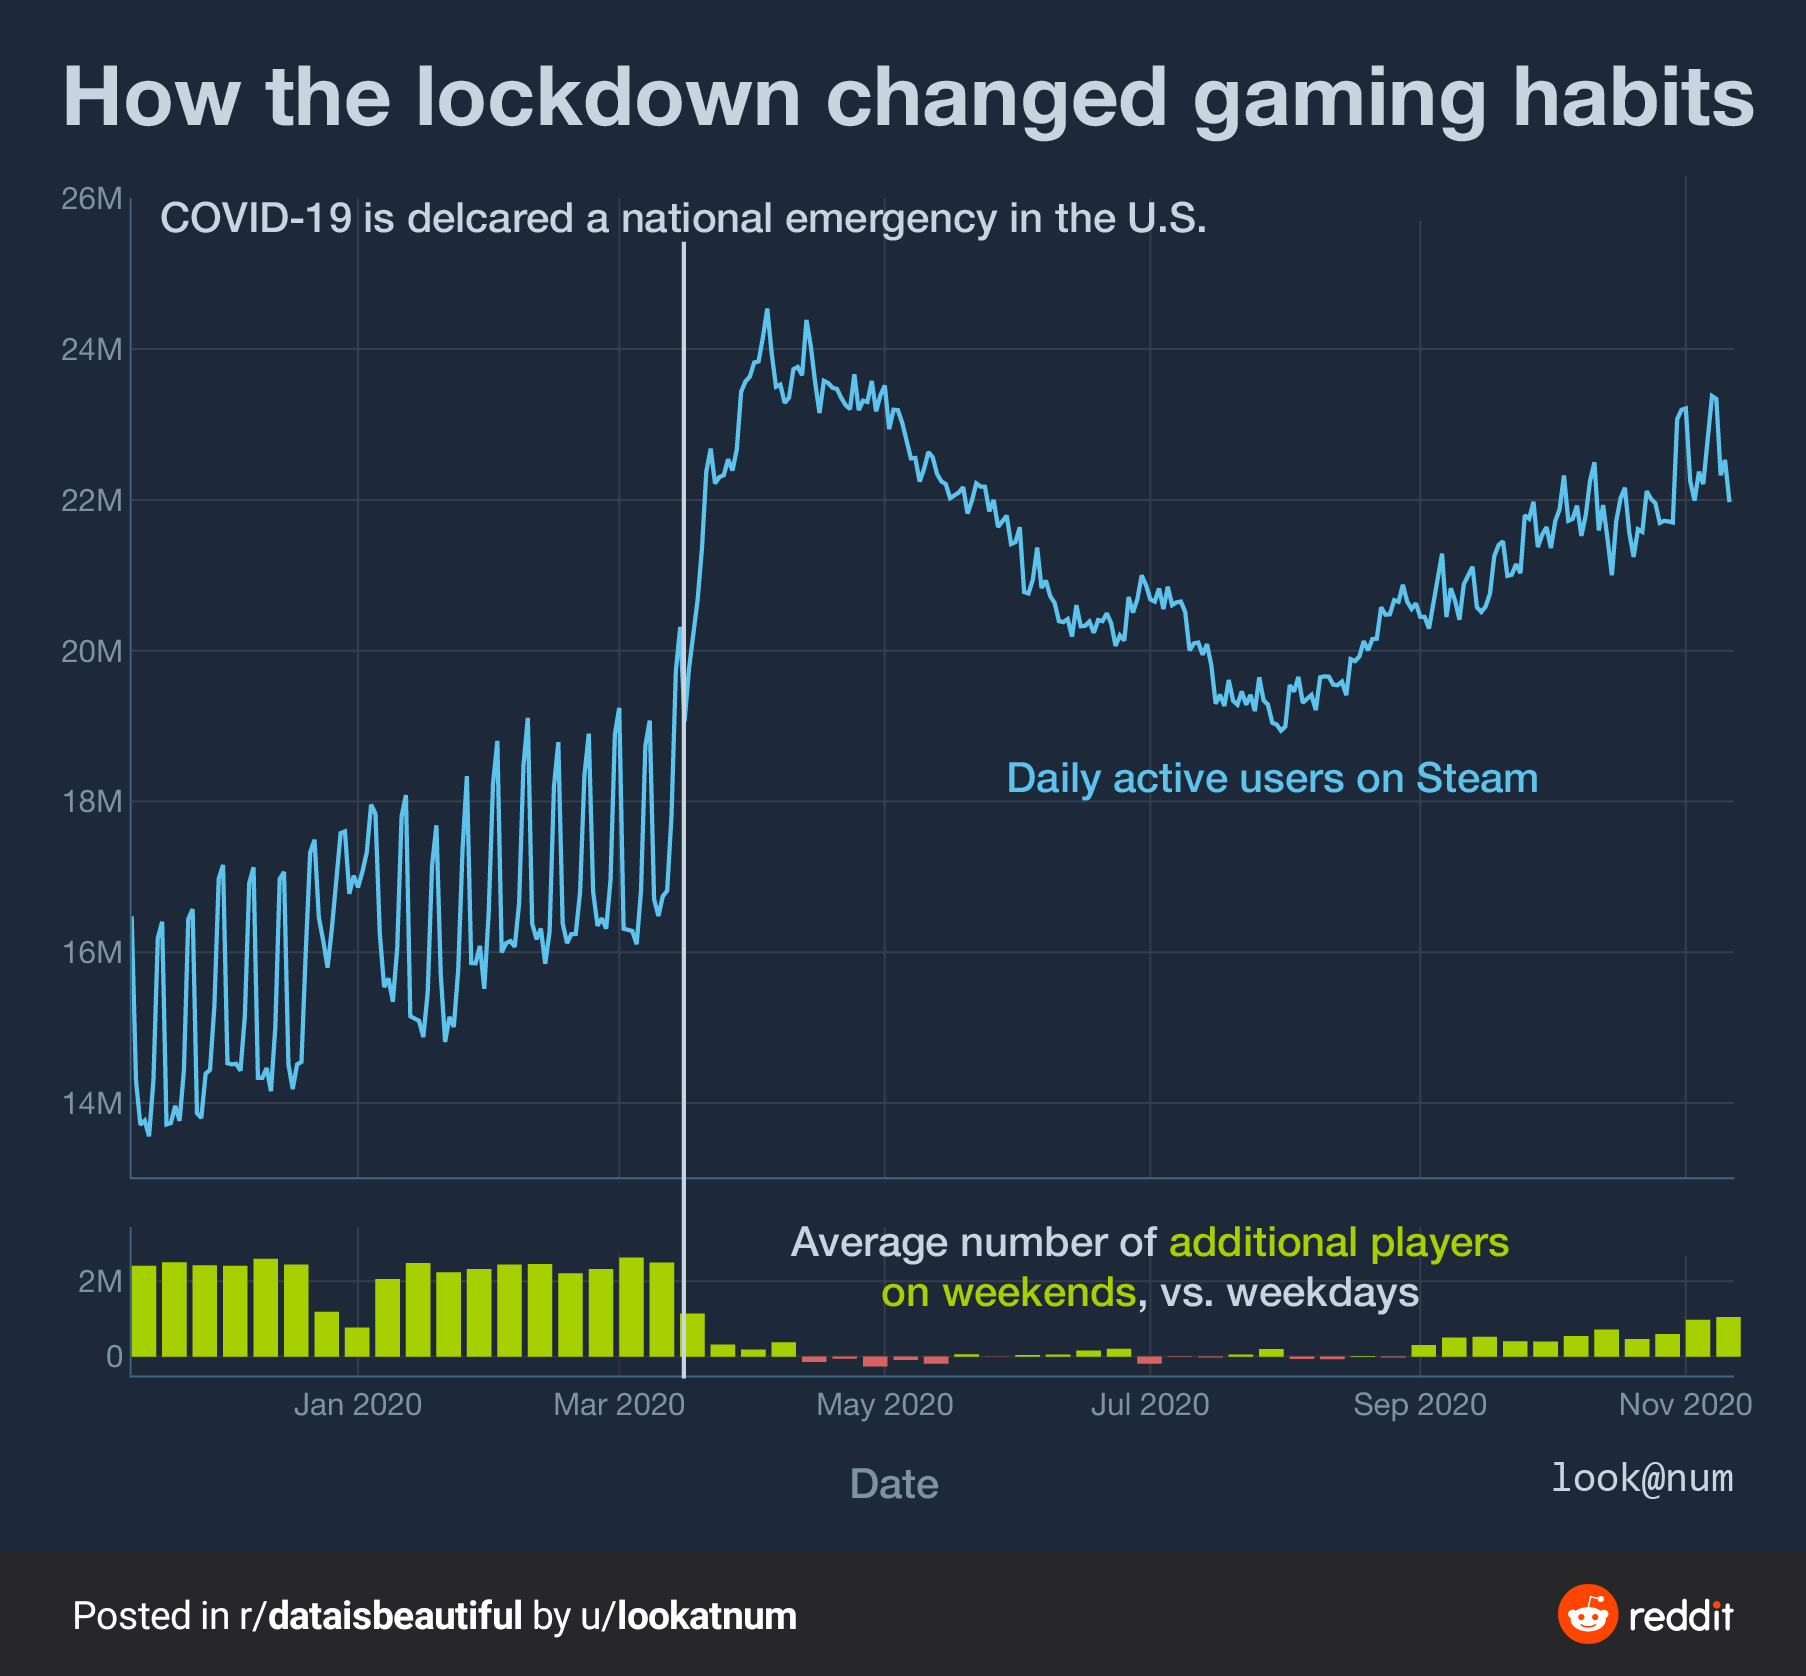 How has the number of Steam users affected by COVID-19 1